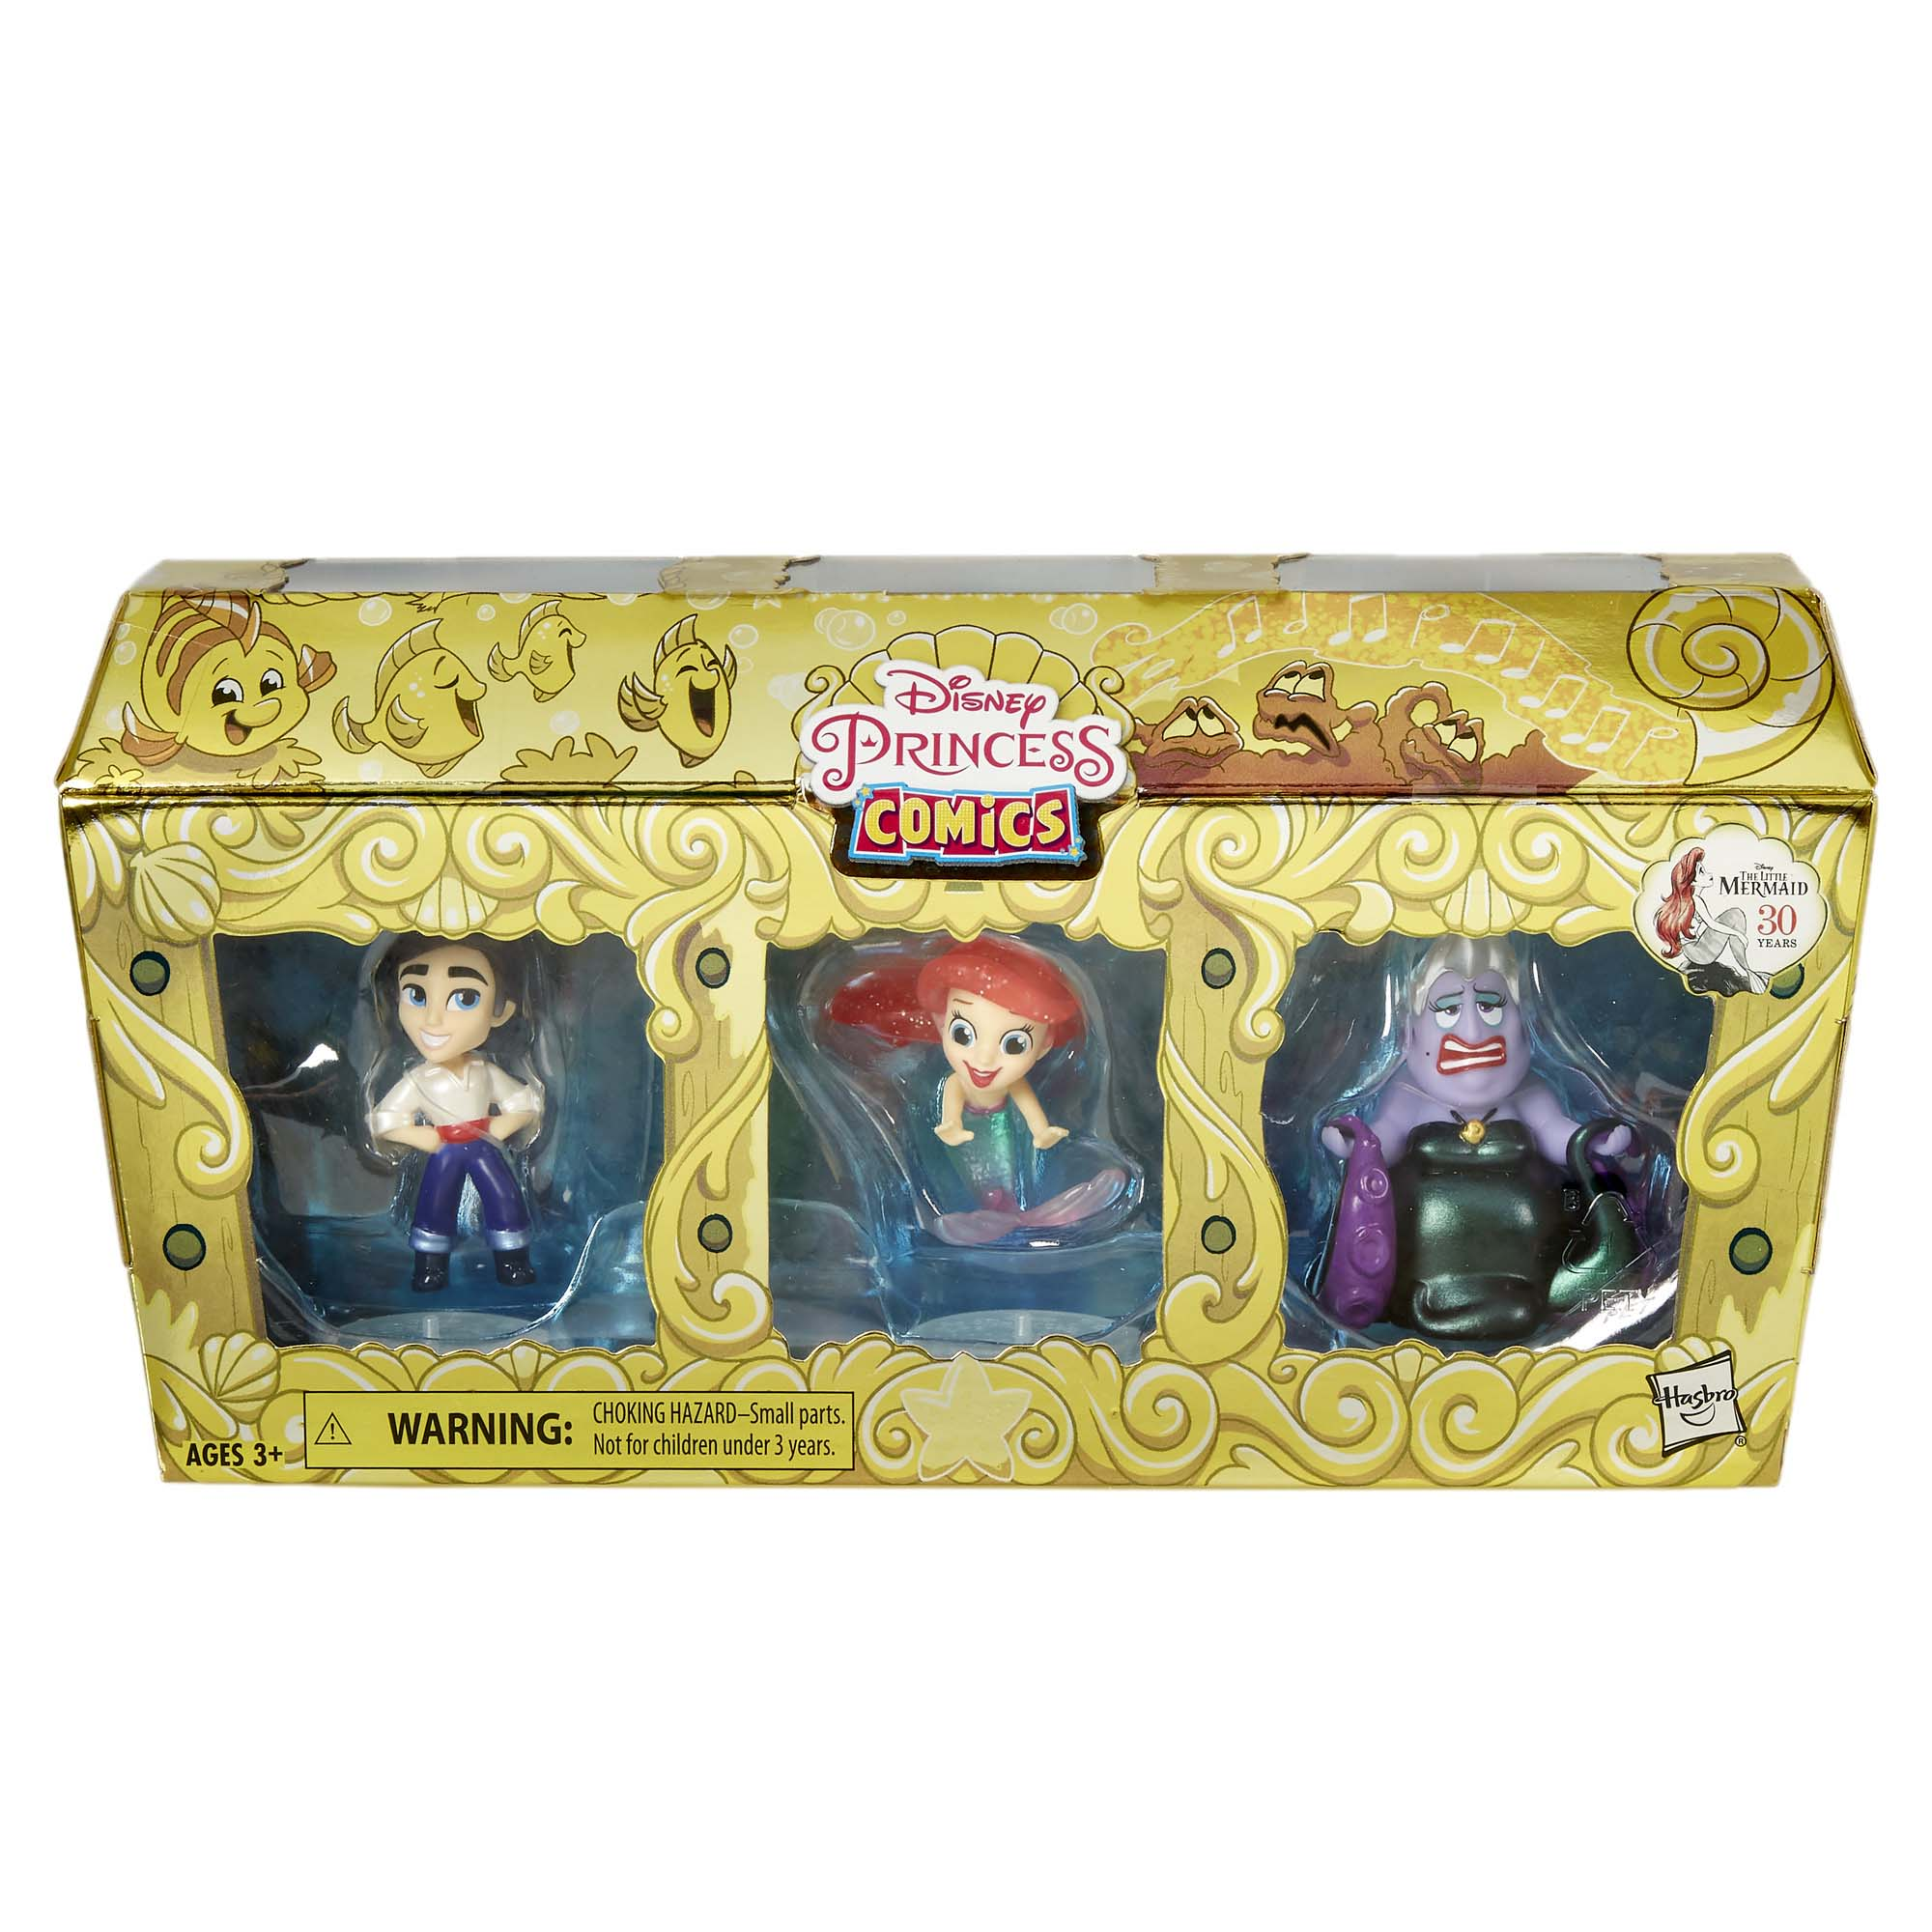 Disney Princess Comics Ariel's Treasure trove